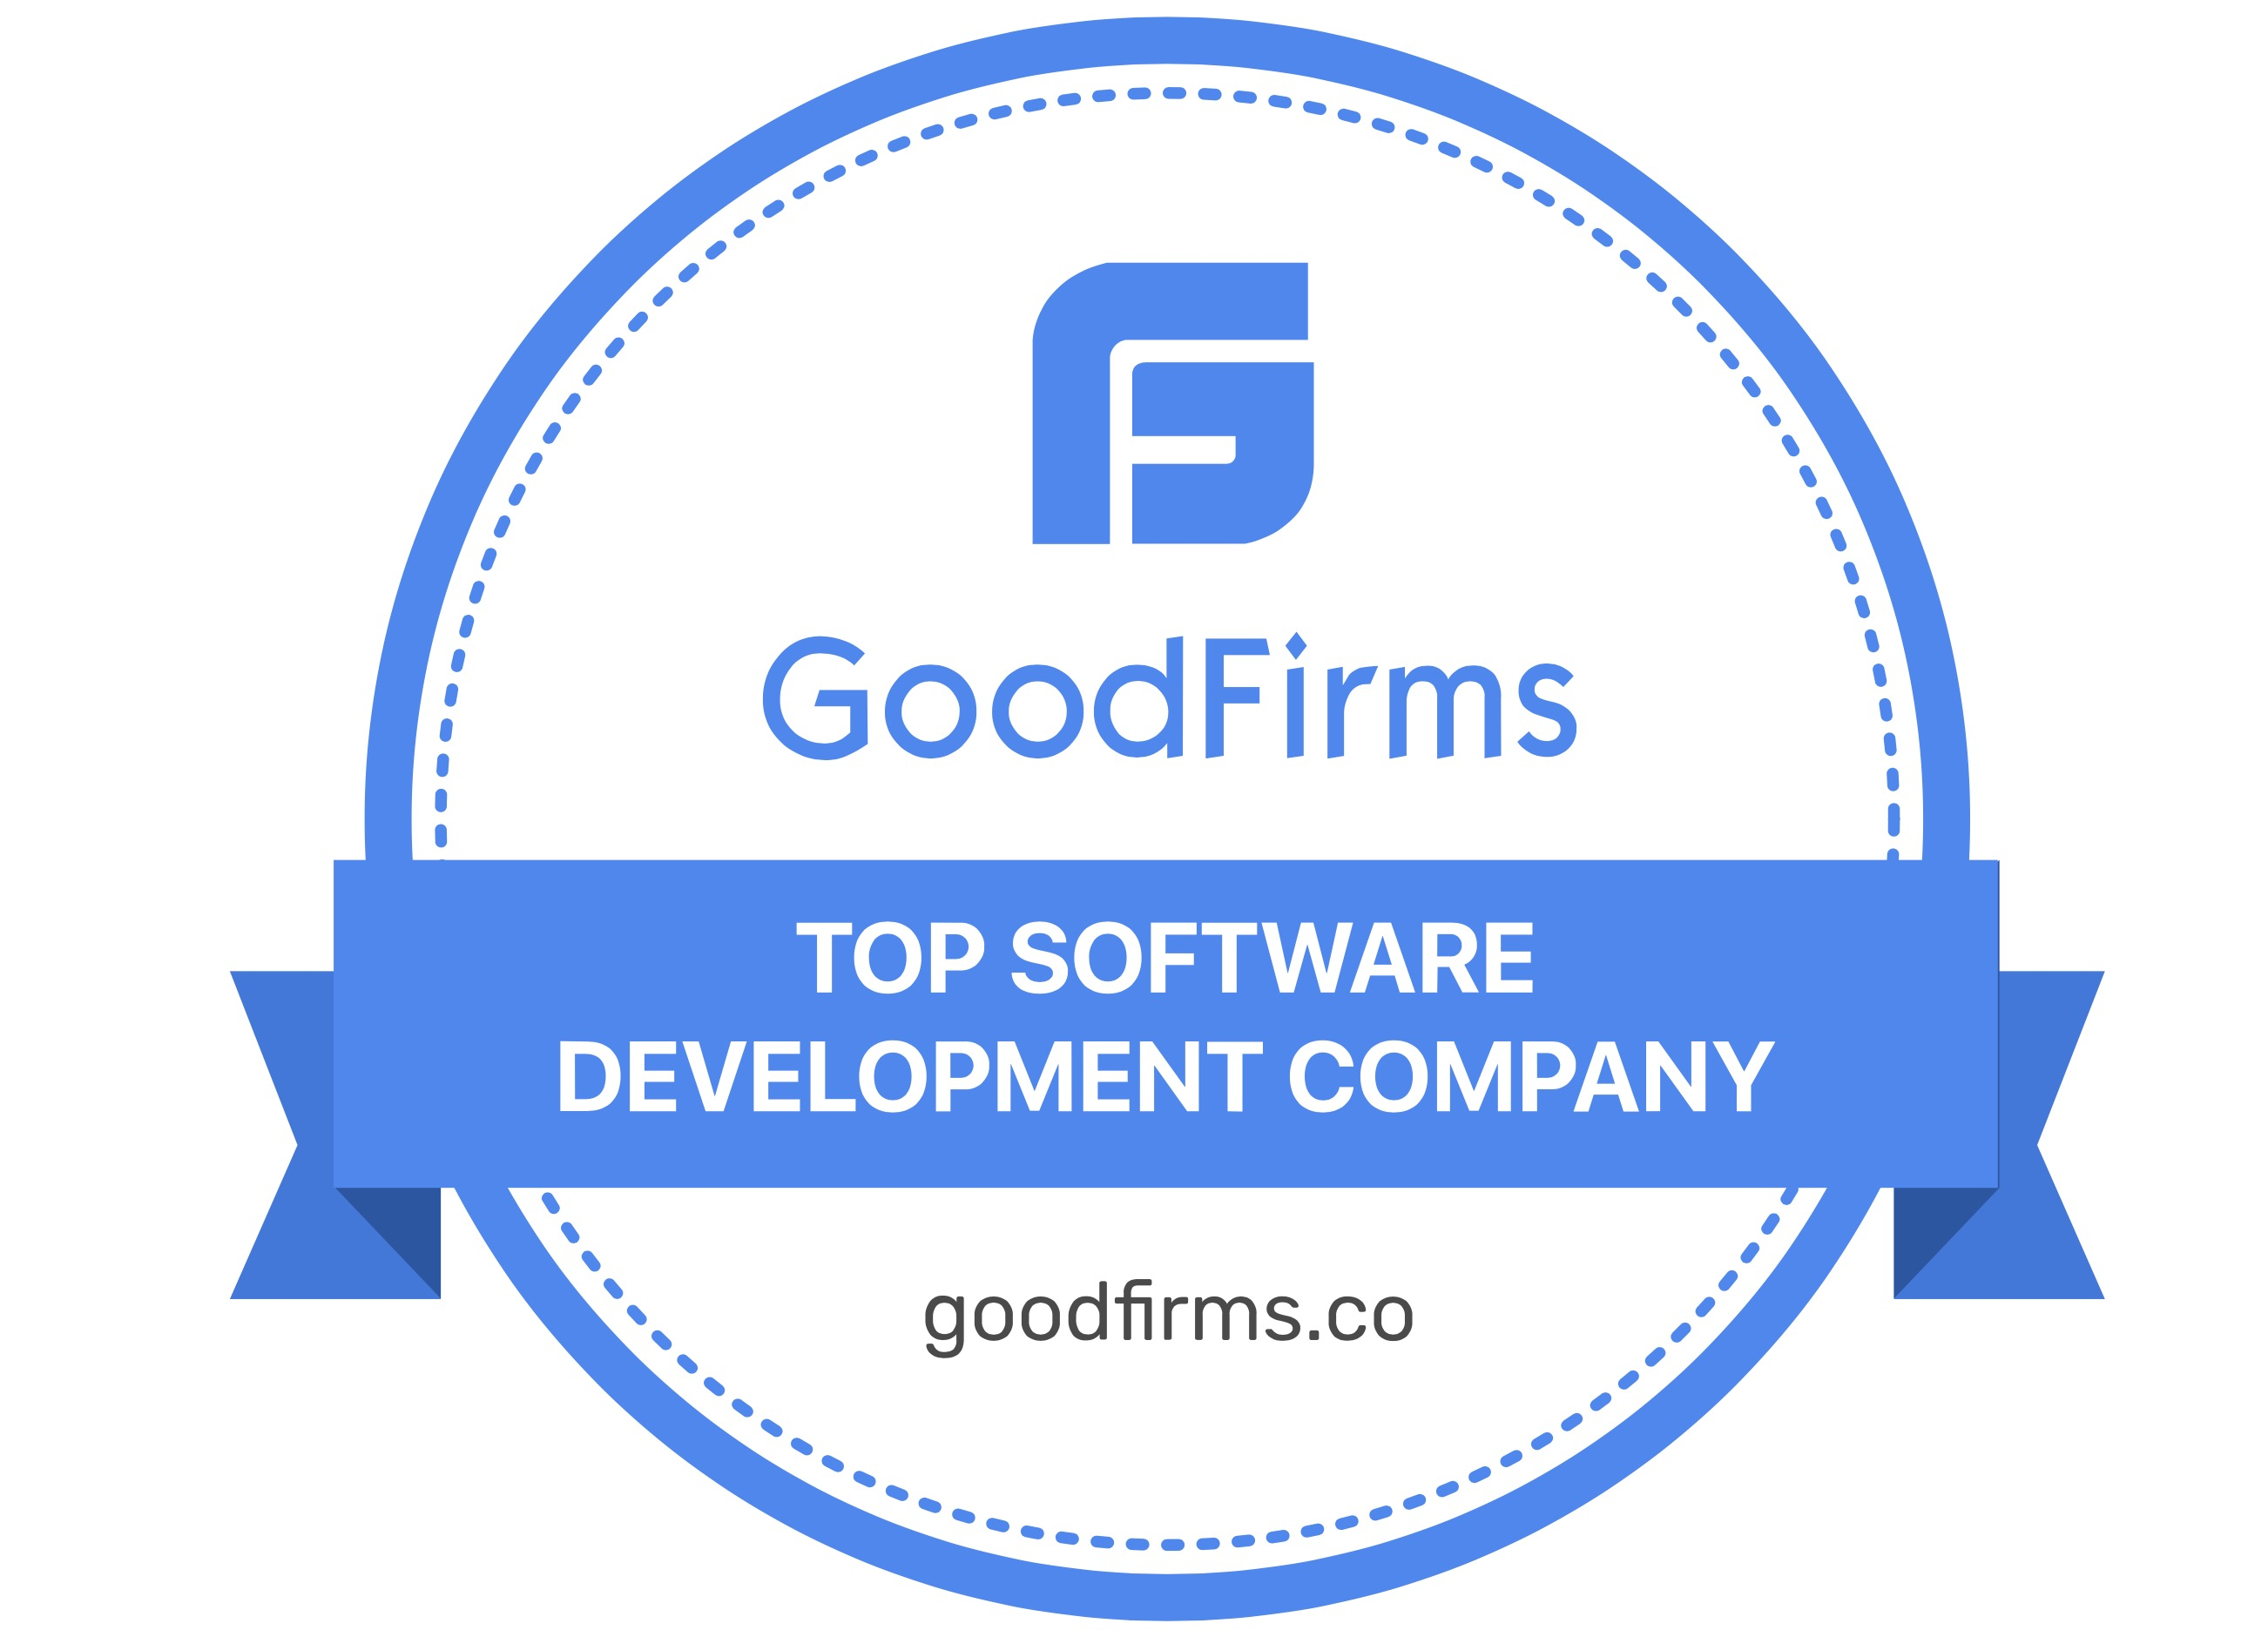 Good Firms Top Software Development Company Boston AndPlus